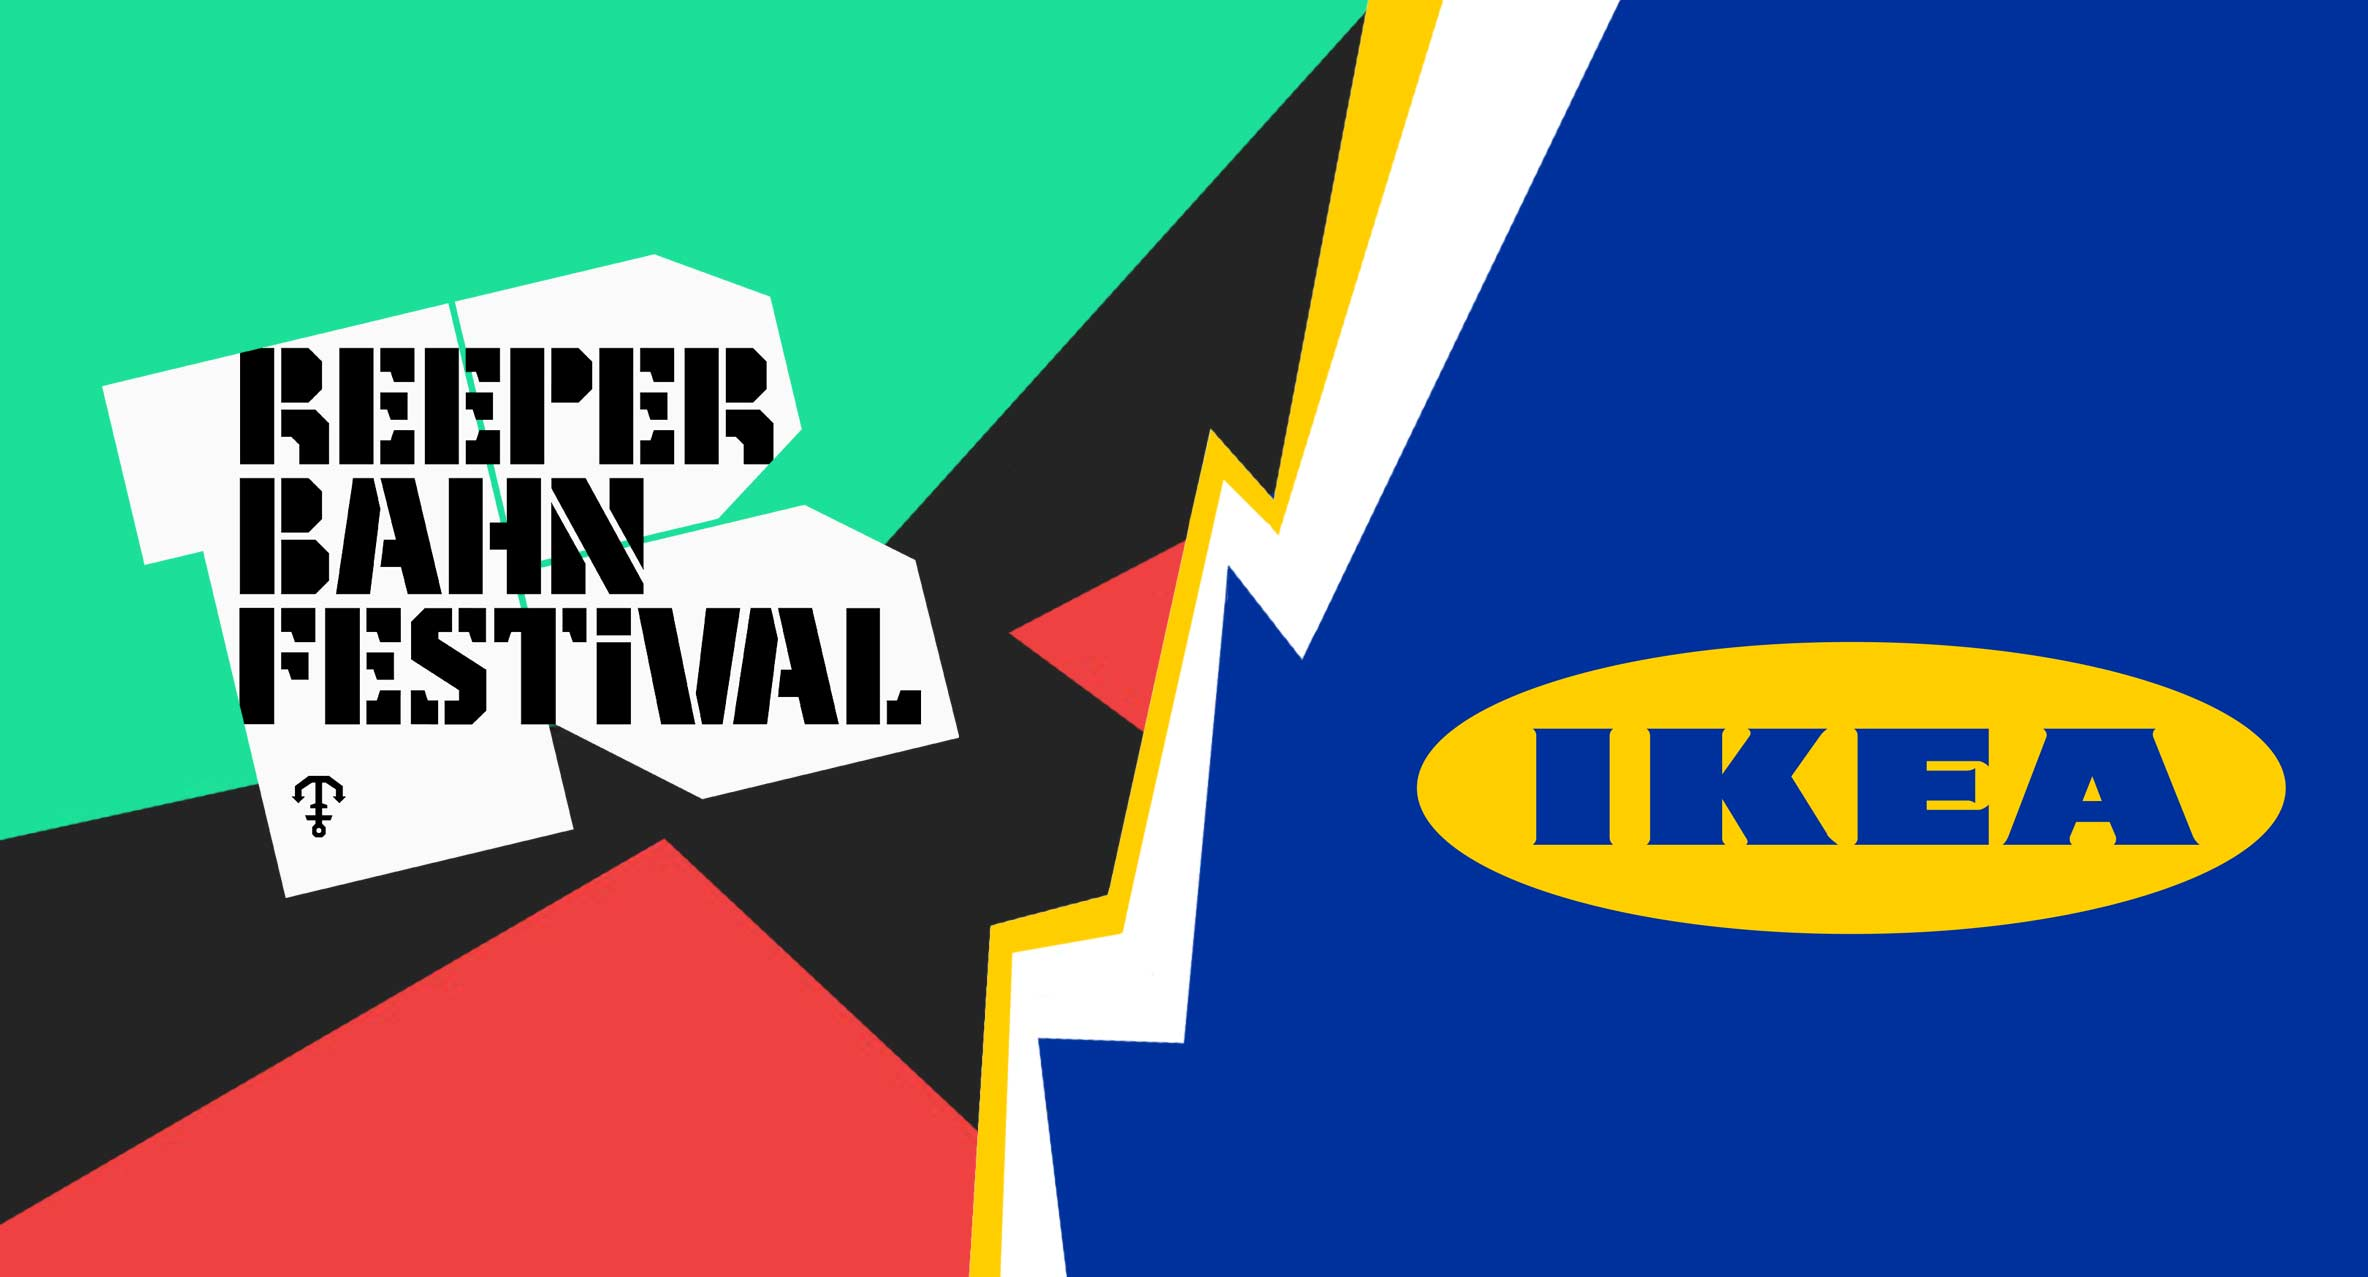 reeperbahn festival act oder ikea produkt quizmag popkultur r tsel f r coole k pfe. Black Bedroom Furniture Sets. Home Design Ideas